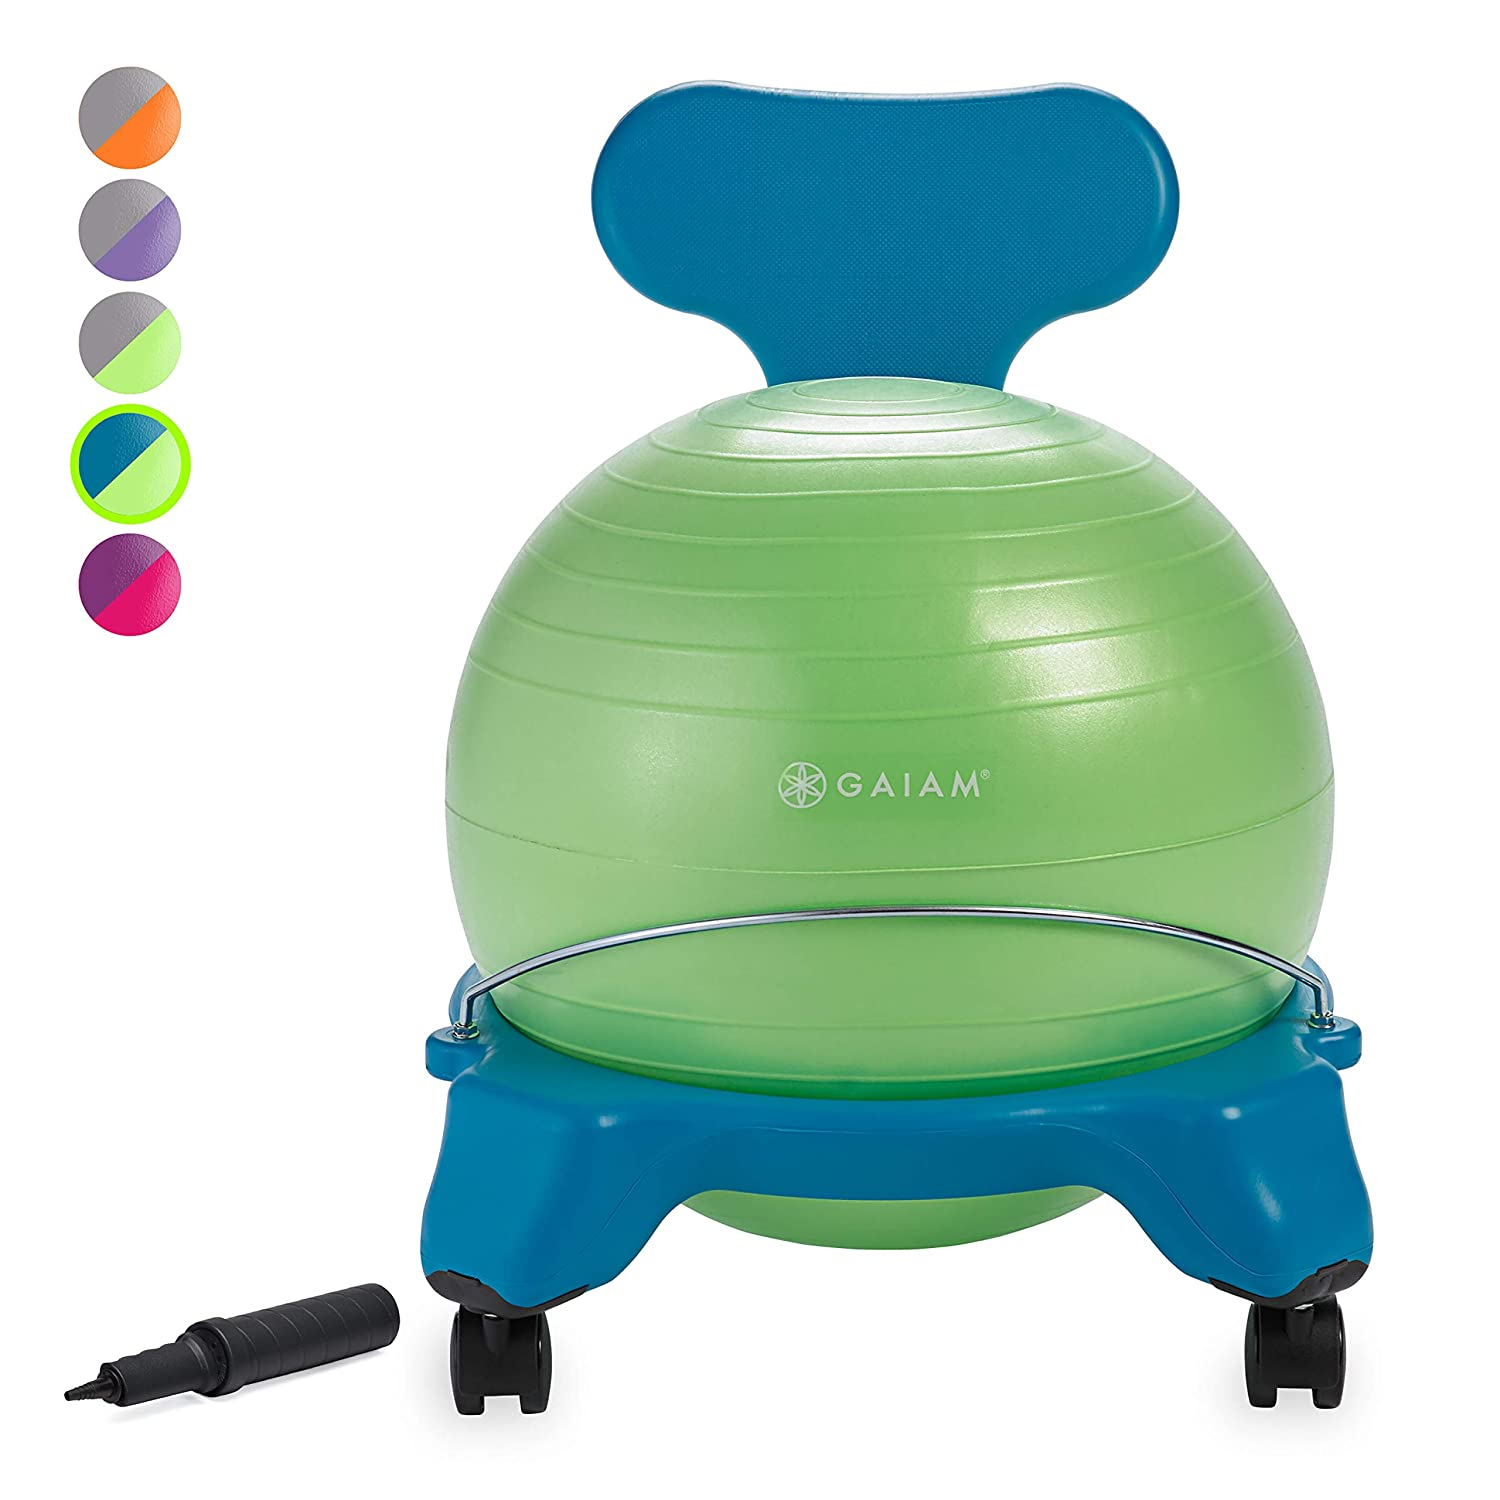 Fantastic Gaiam Kids Balance Ball Chair Classic Childrens Stability Ball Chair Child Classroom Desk Seating Caraccident5 Cool Chair Designs And Ideas Caraccident5Info